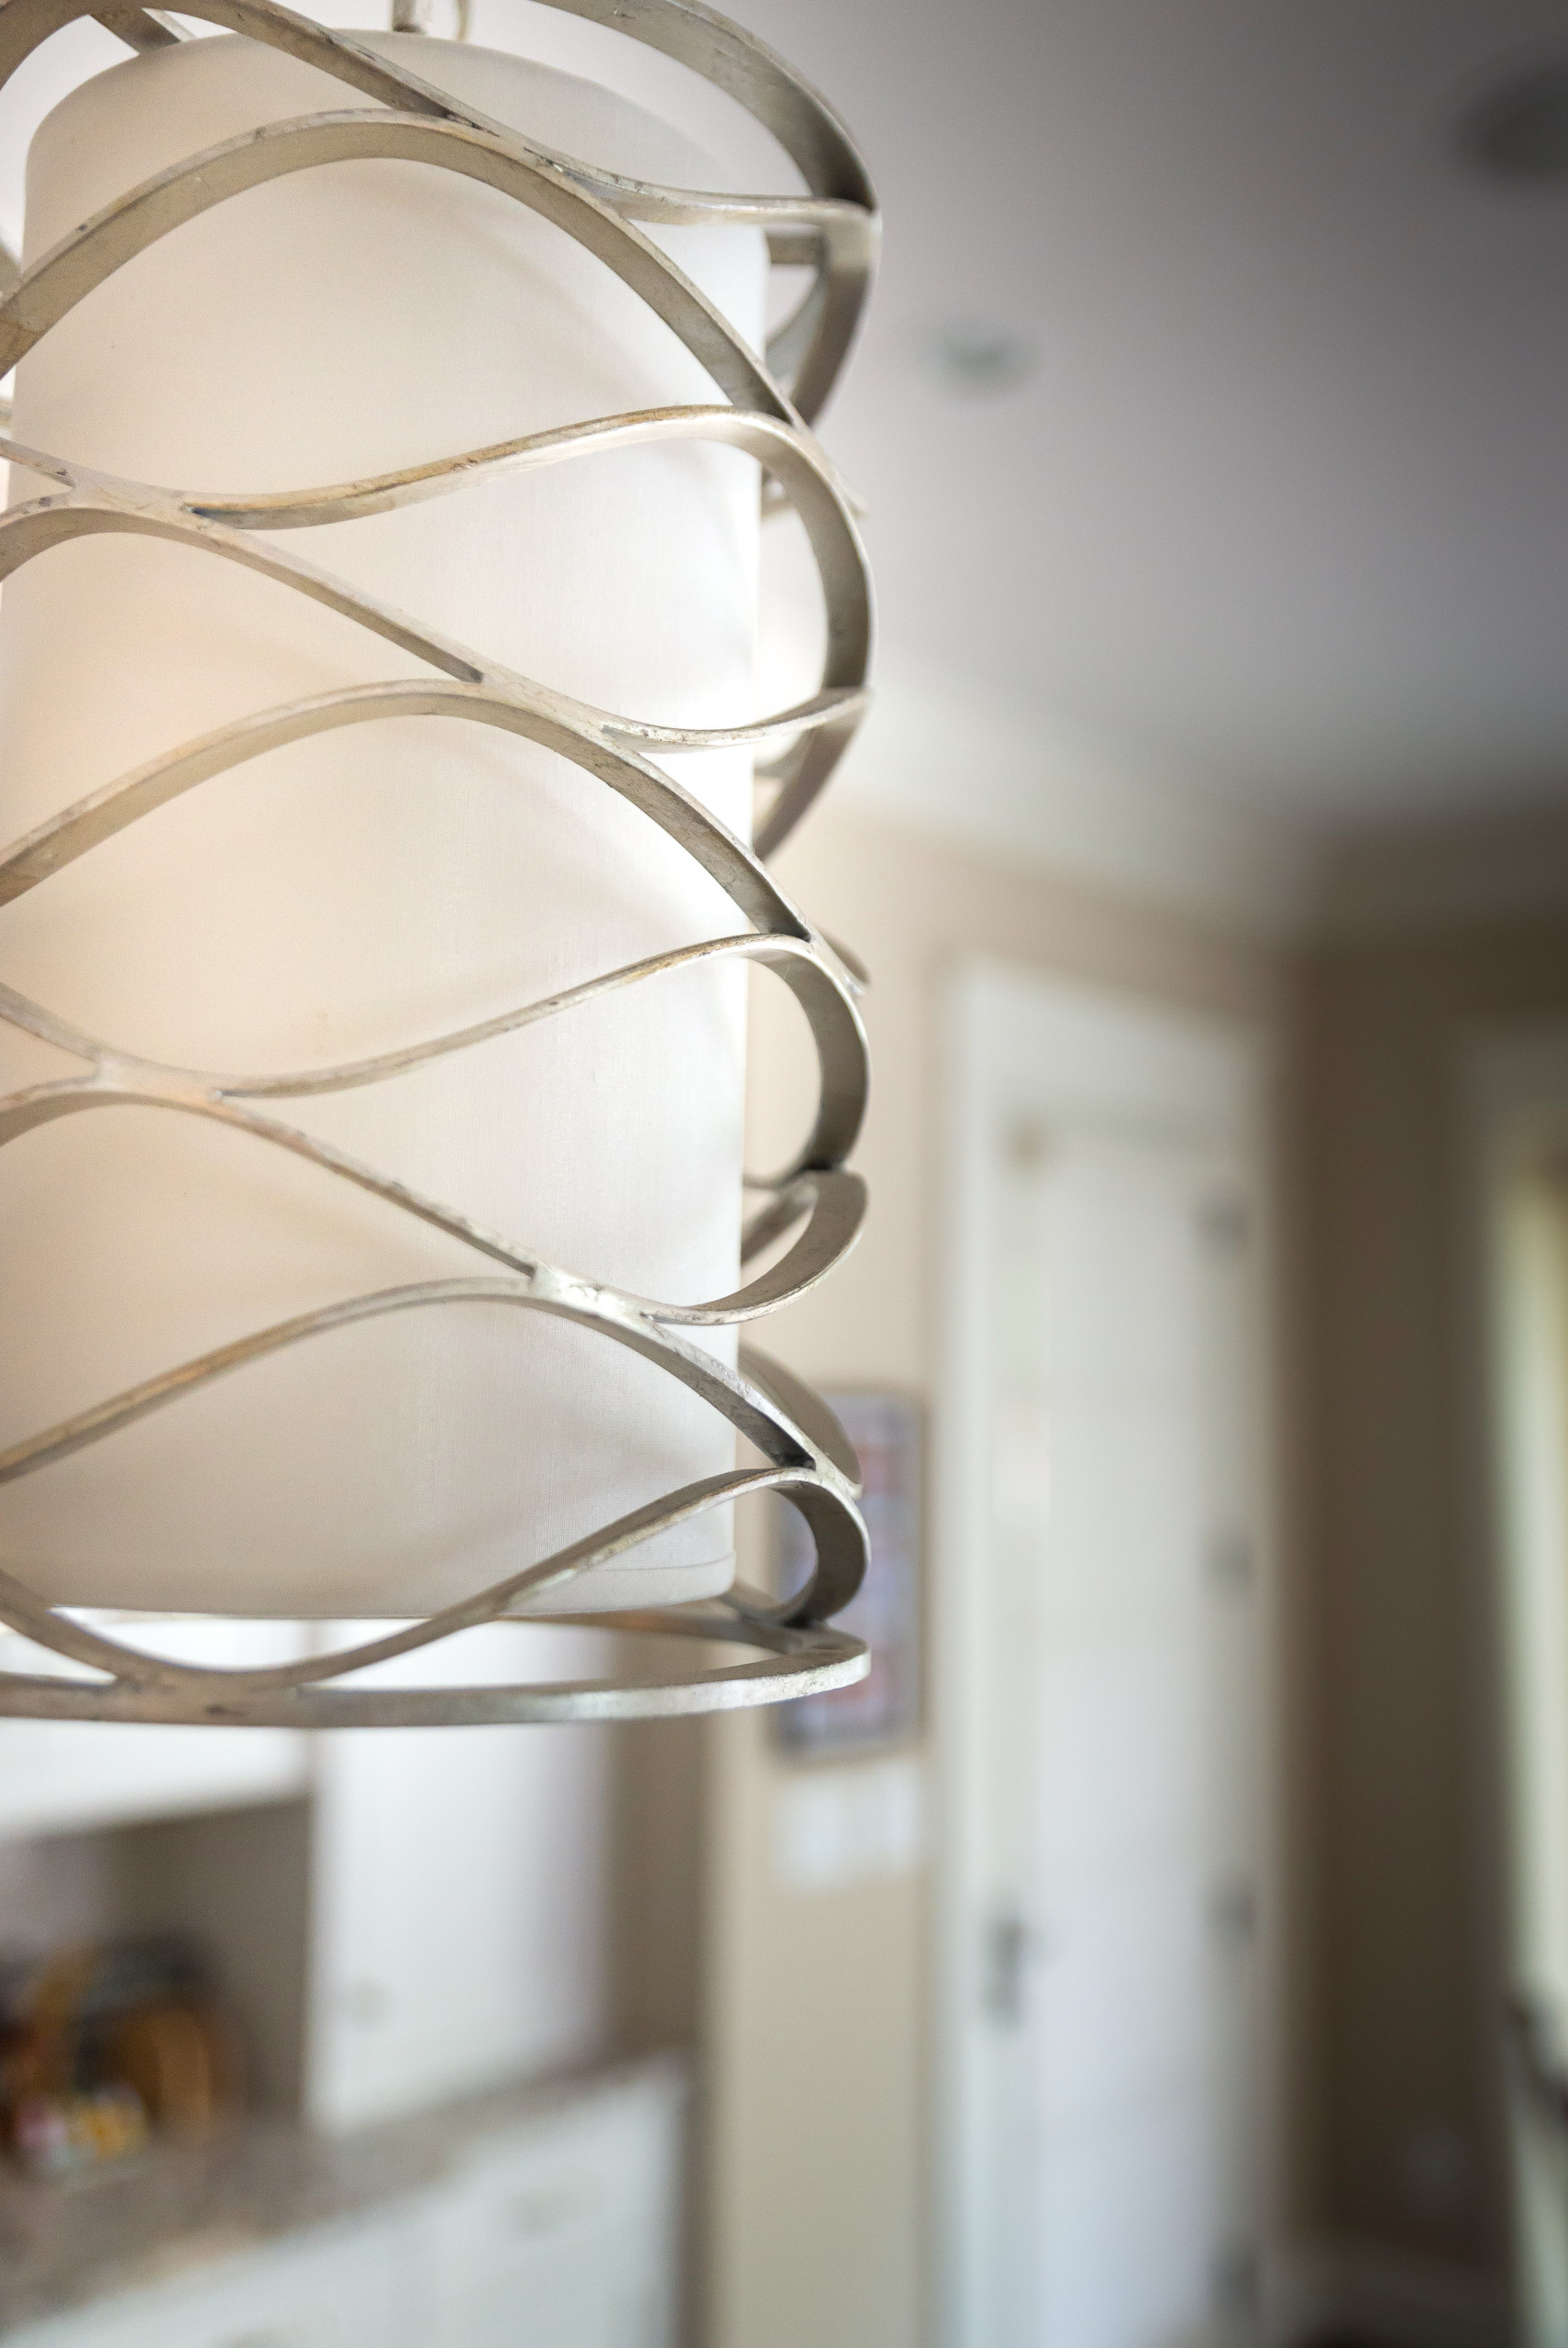 Kitchen Lighting Sets the Stage